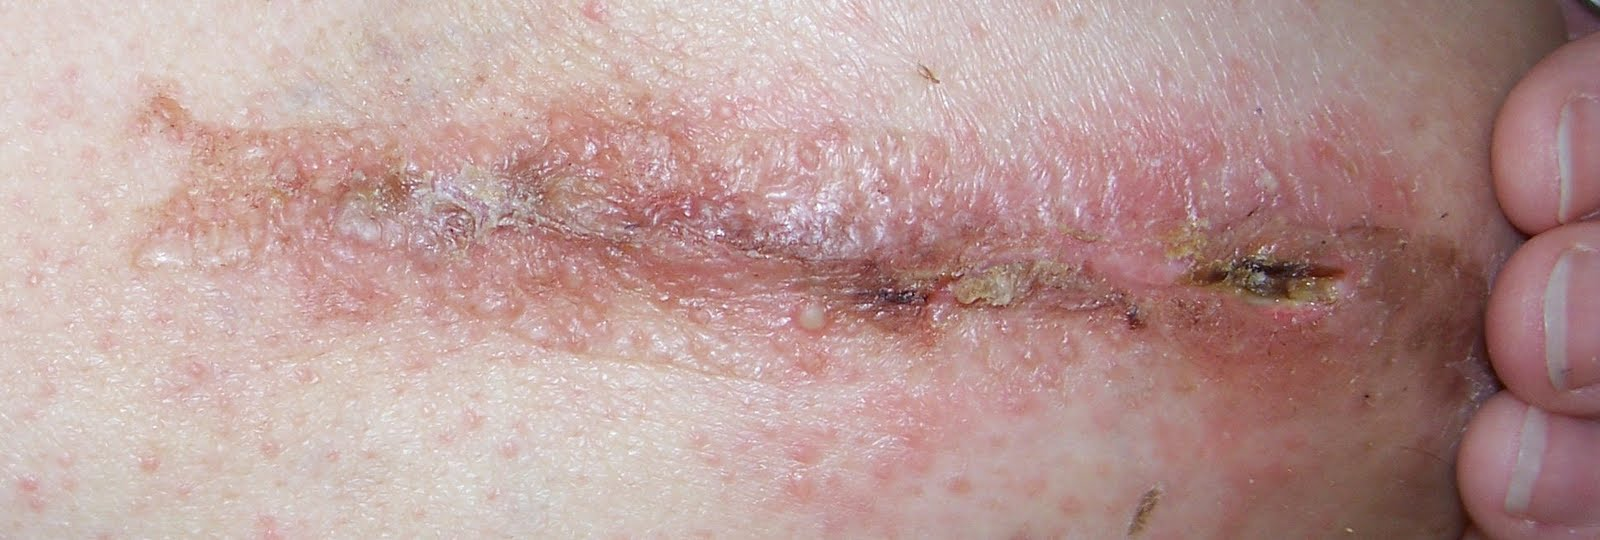 Surgical Incision Yeast Infection Guide